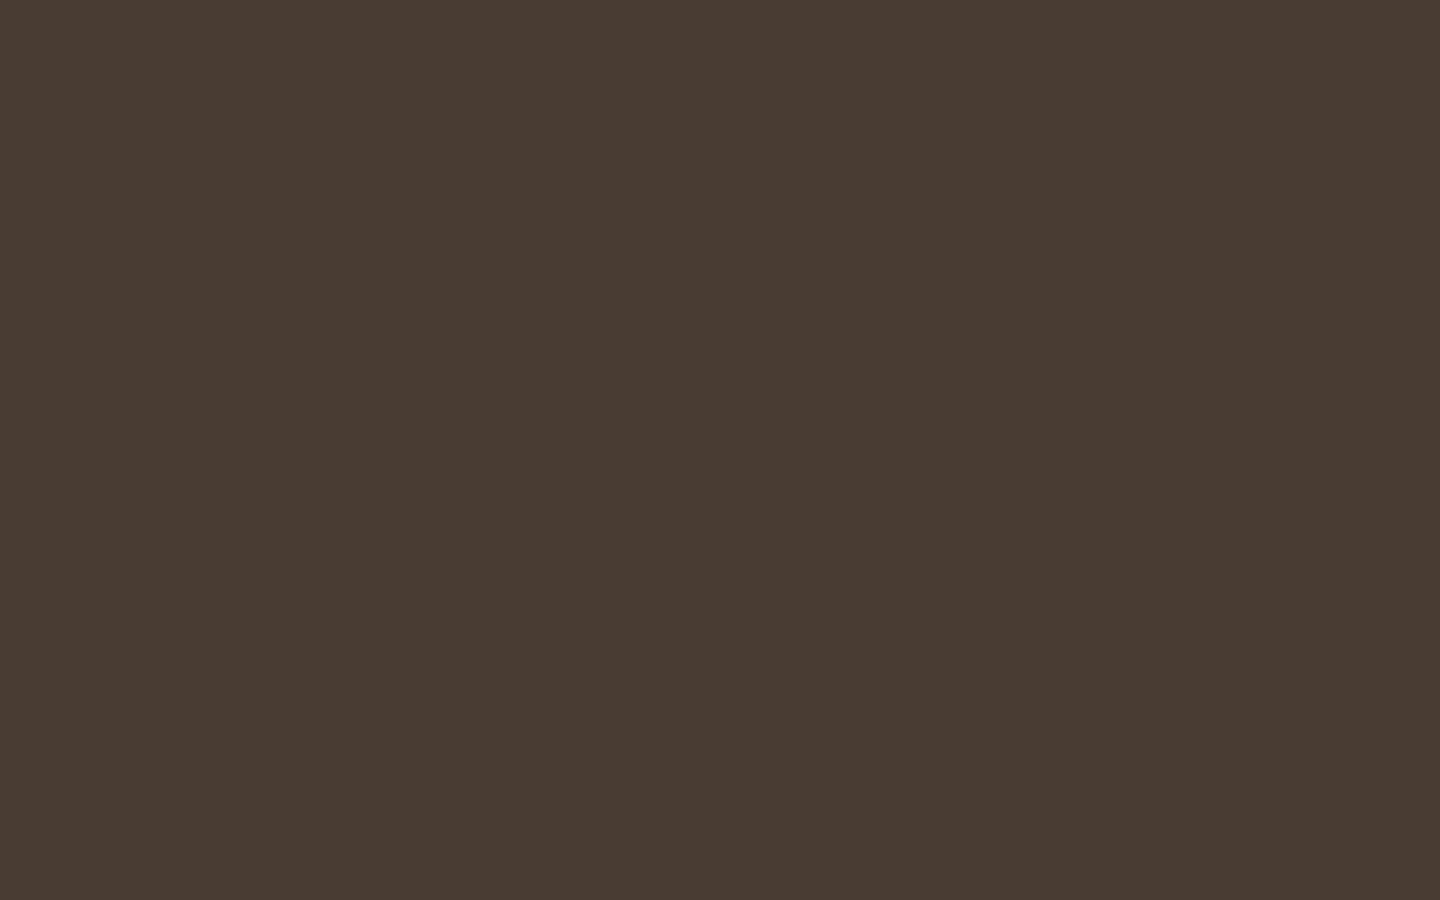 1440x900 Dark Taupe Solid Color Background